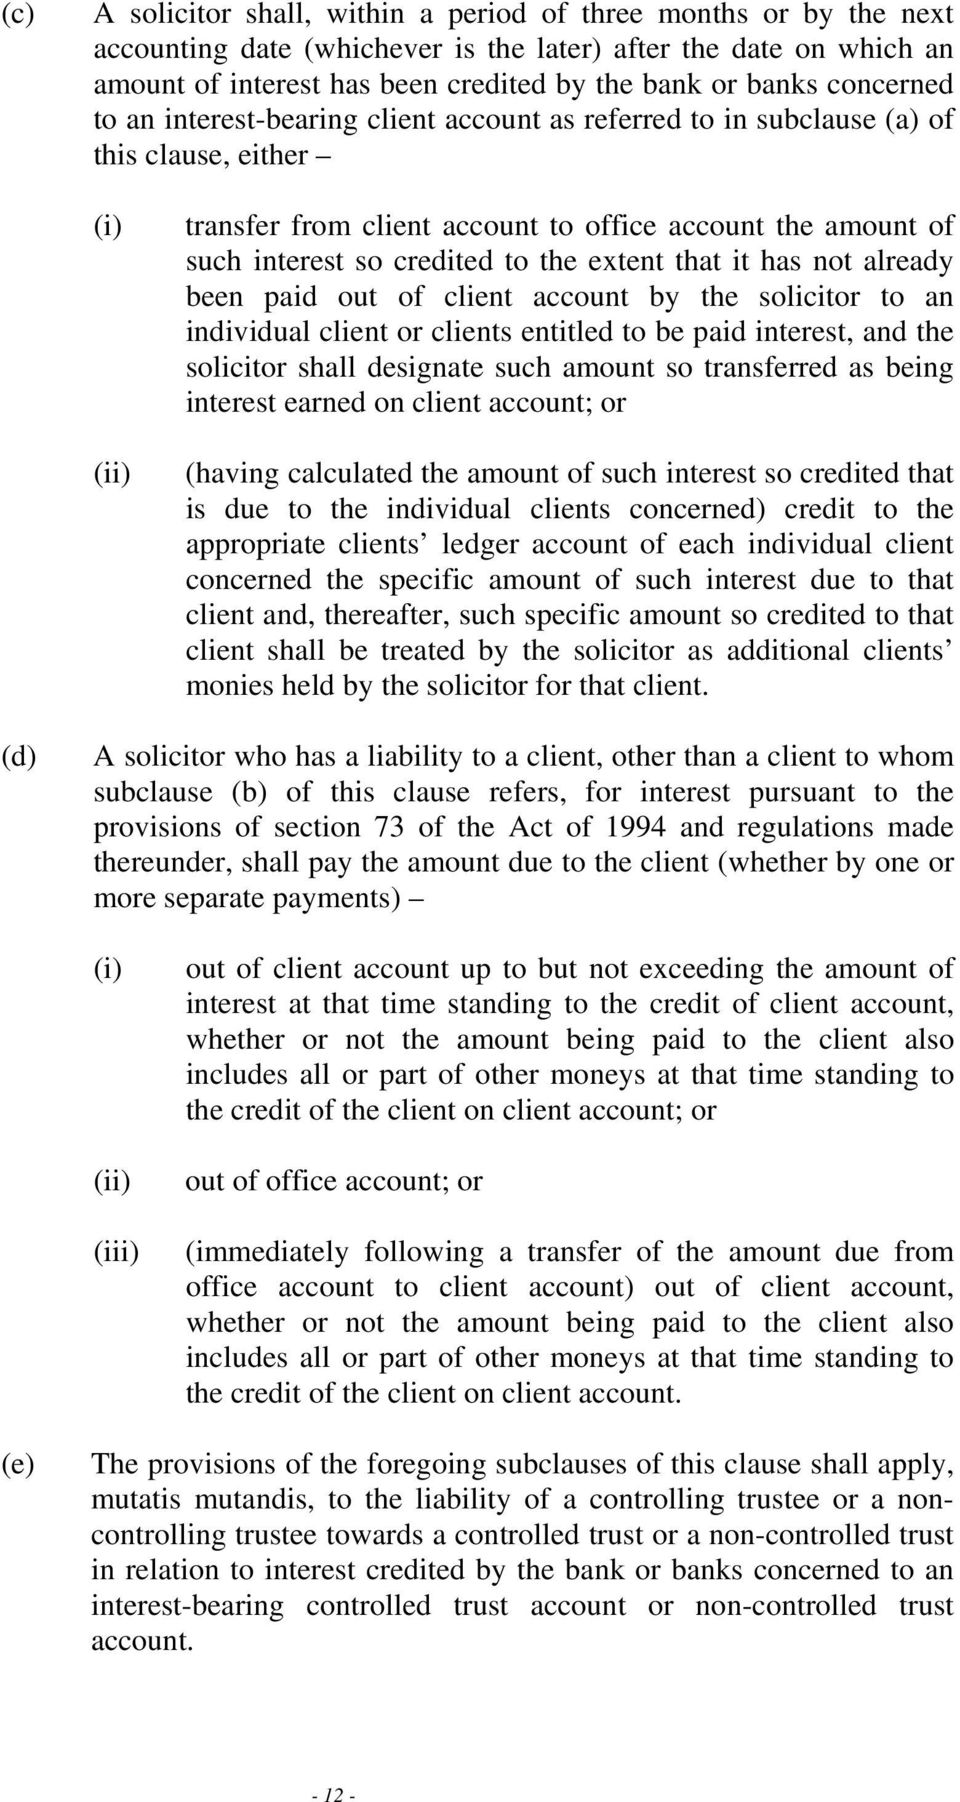 the extent that it has not already been paid out of client account by the solicitor to an individual client or clients entitled to be paid interest, and the solicitor shall designate such amount so